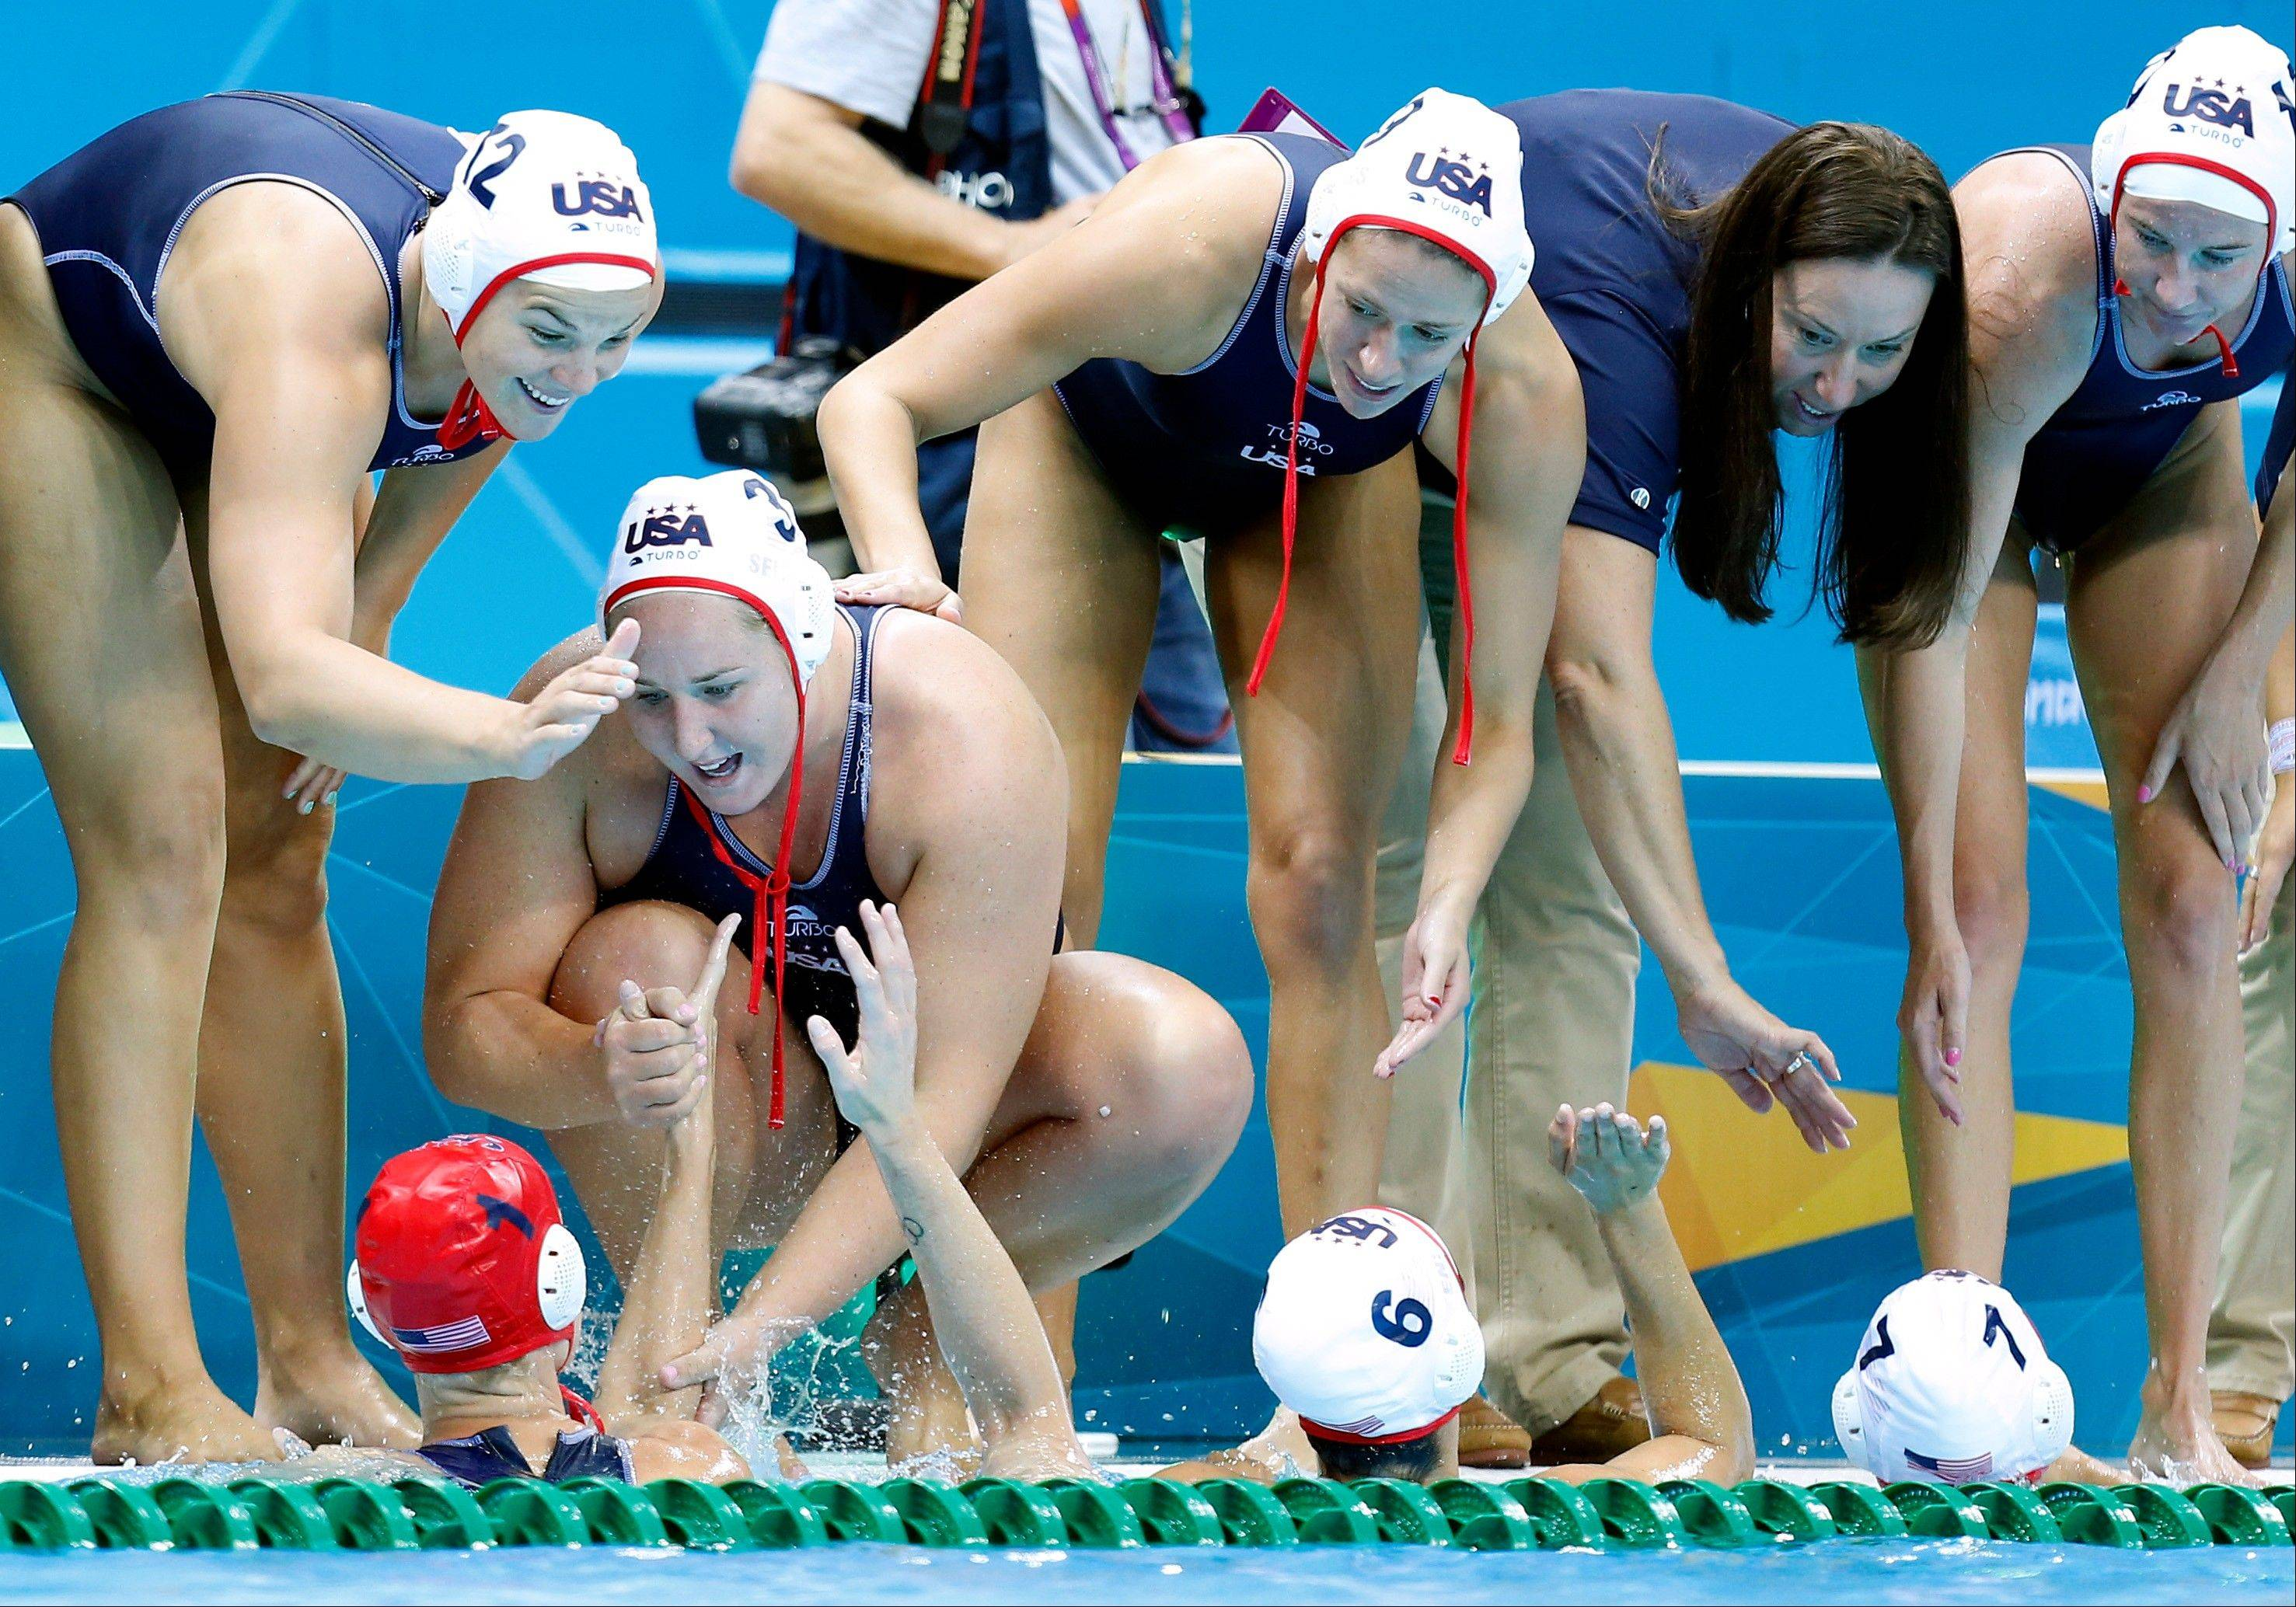 Kami Craig, left and Melissa Seidemann, second left, reaches down to shake hands with goalkeeper Betsey Armstrong all of the United States water polo team after they defeated Italy in their women's water polo quarterfinal match at the 2012 Summer Olympics, Sunday, Aug. 5, 2012, in London.